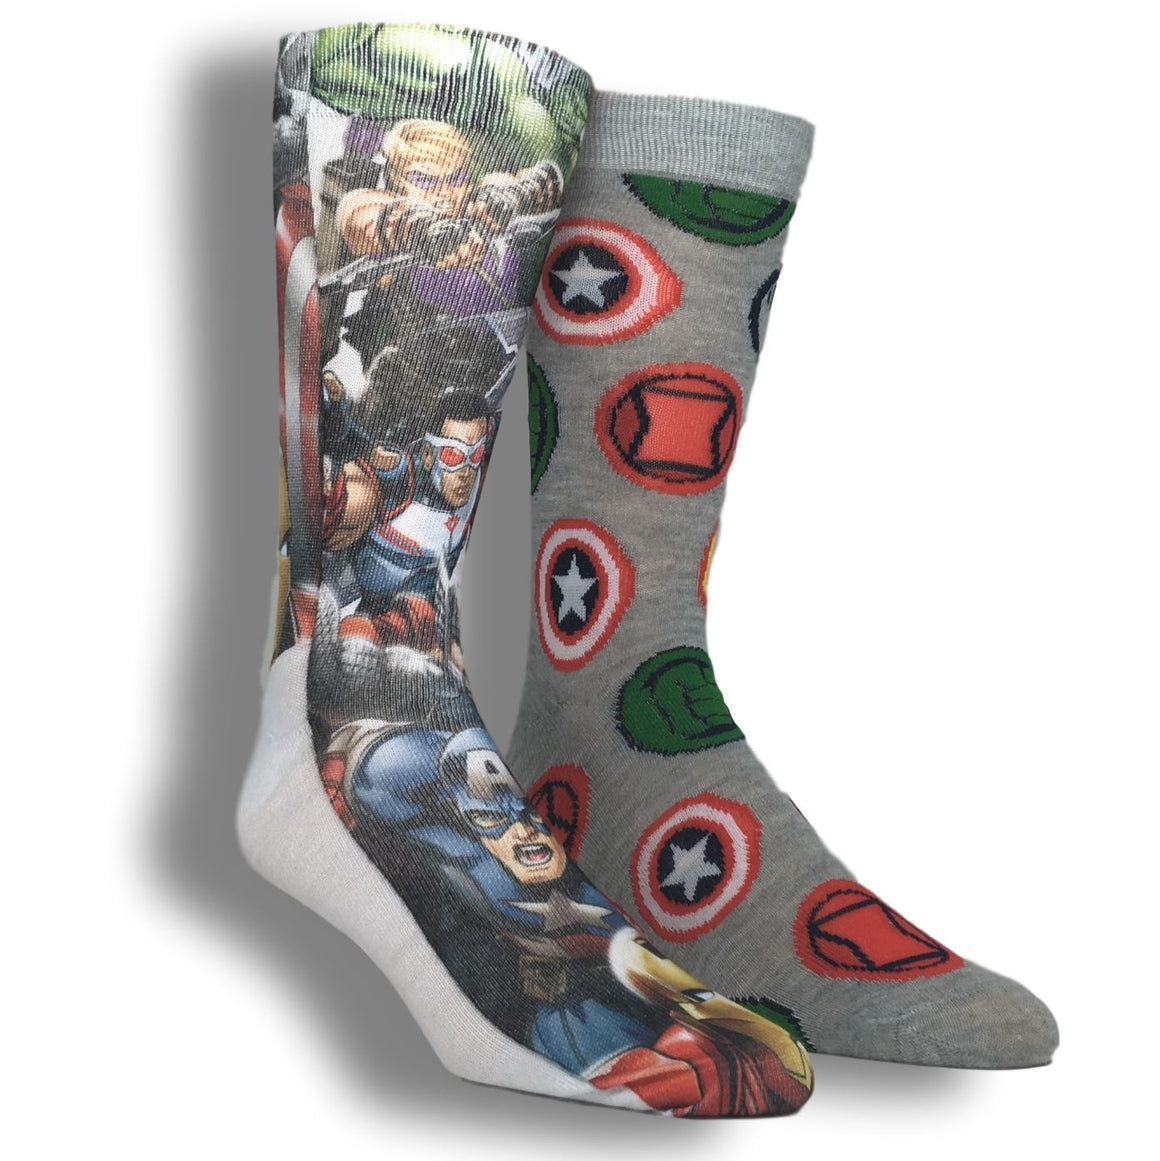 2 Pair Pack Marvel Avengers Superhero Socks - The Sock Spot